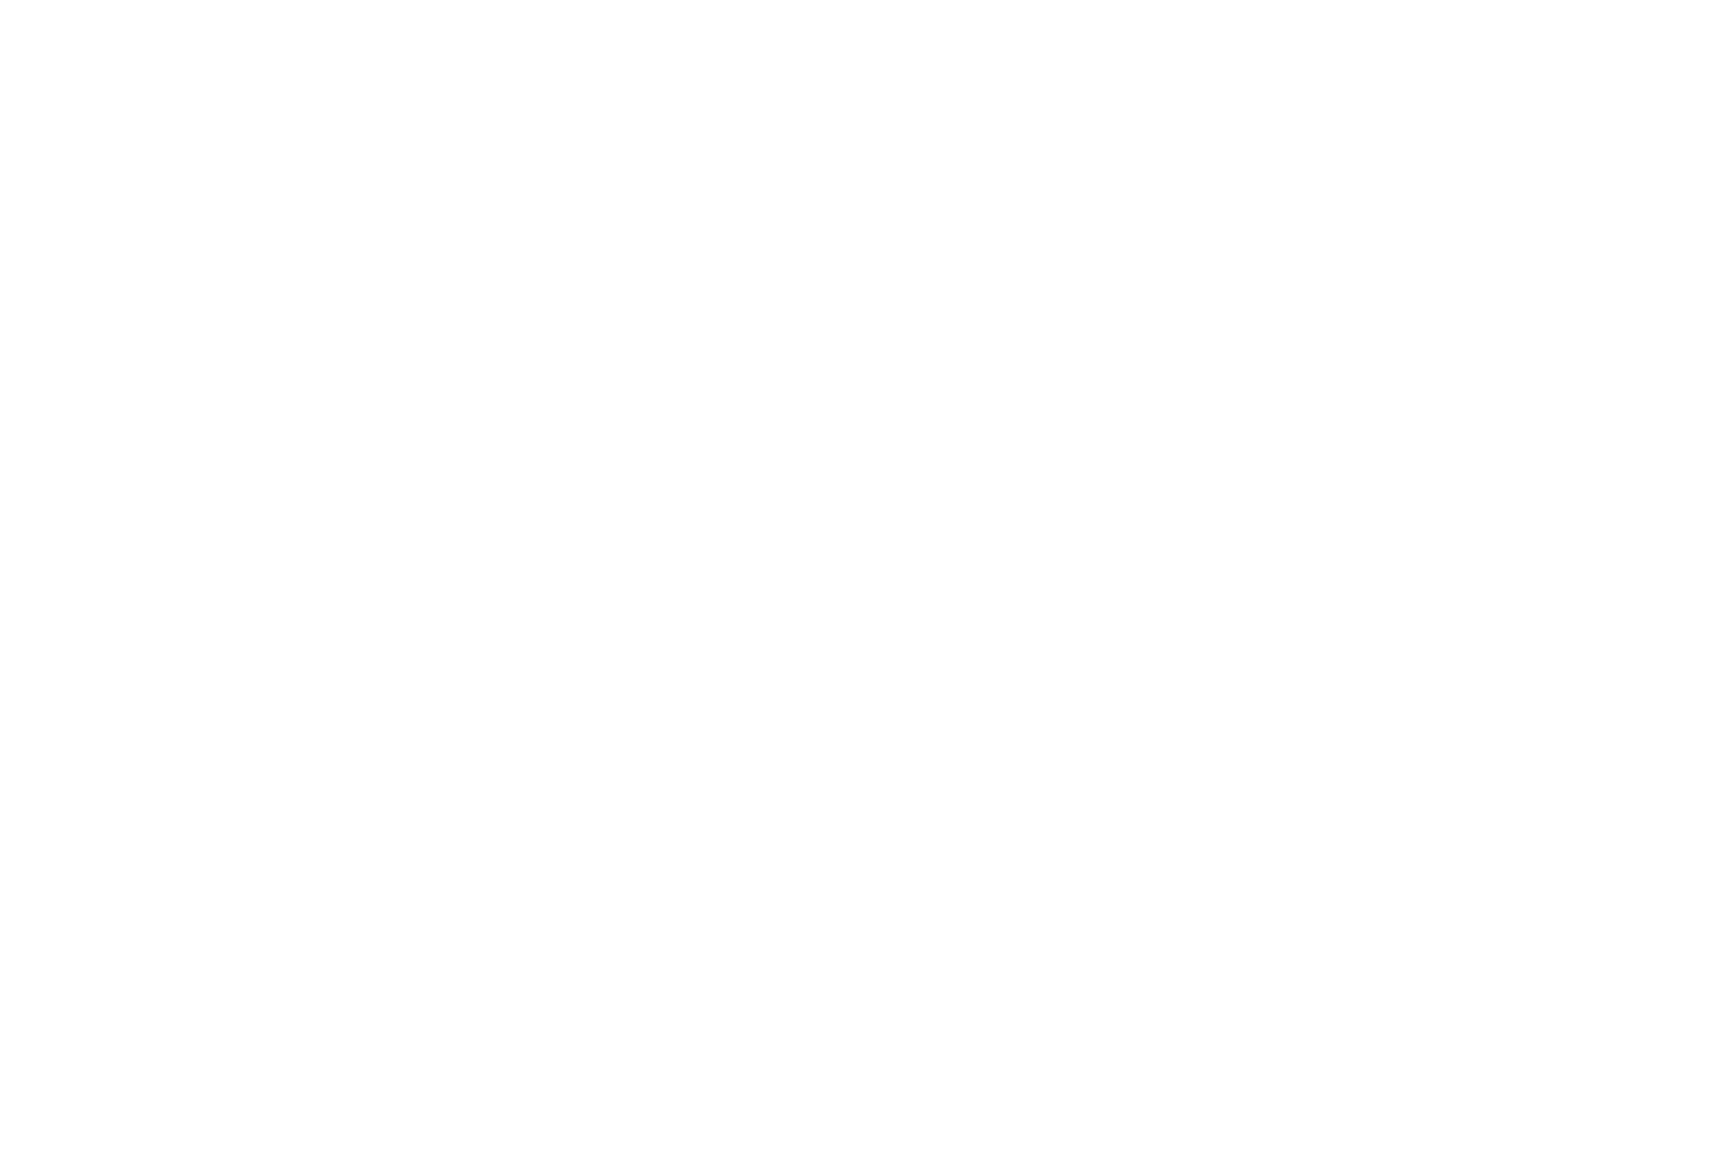 OFFICIAL SELECTION - Indie Short Fest - Best Producers 2021 (1)